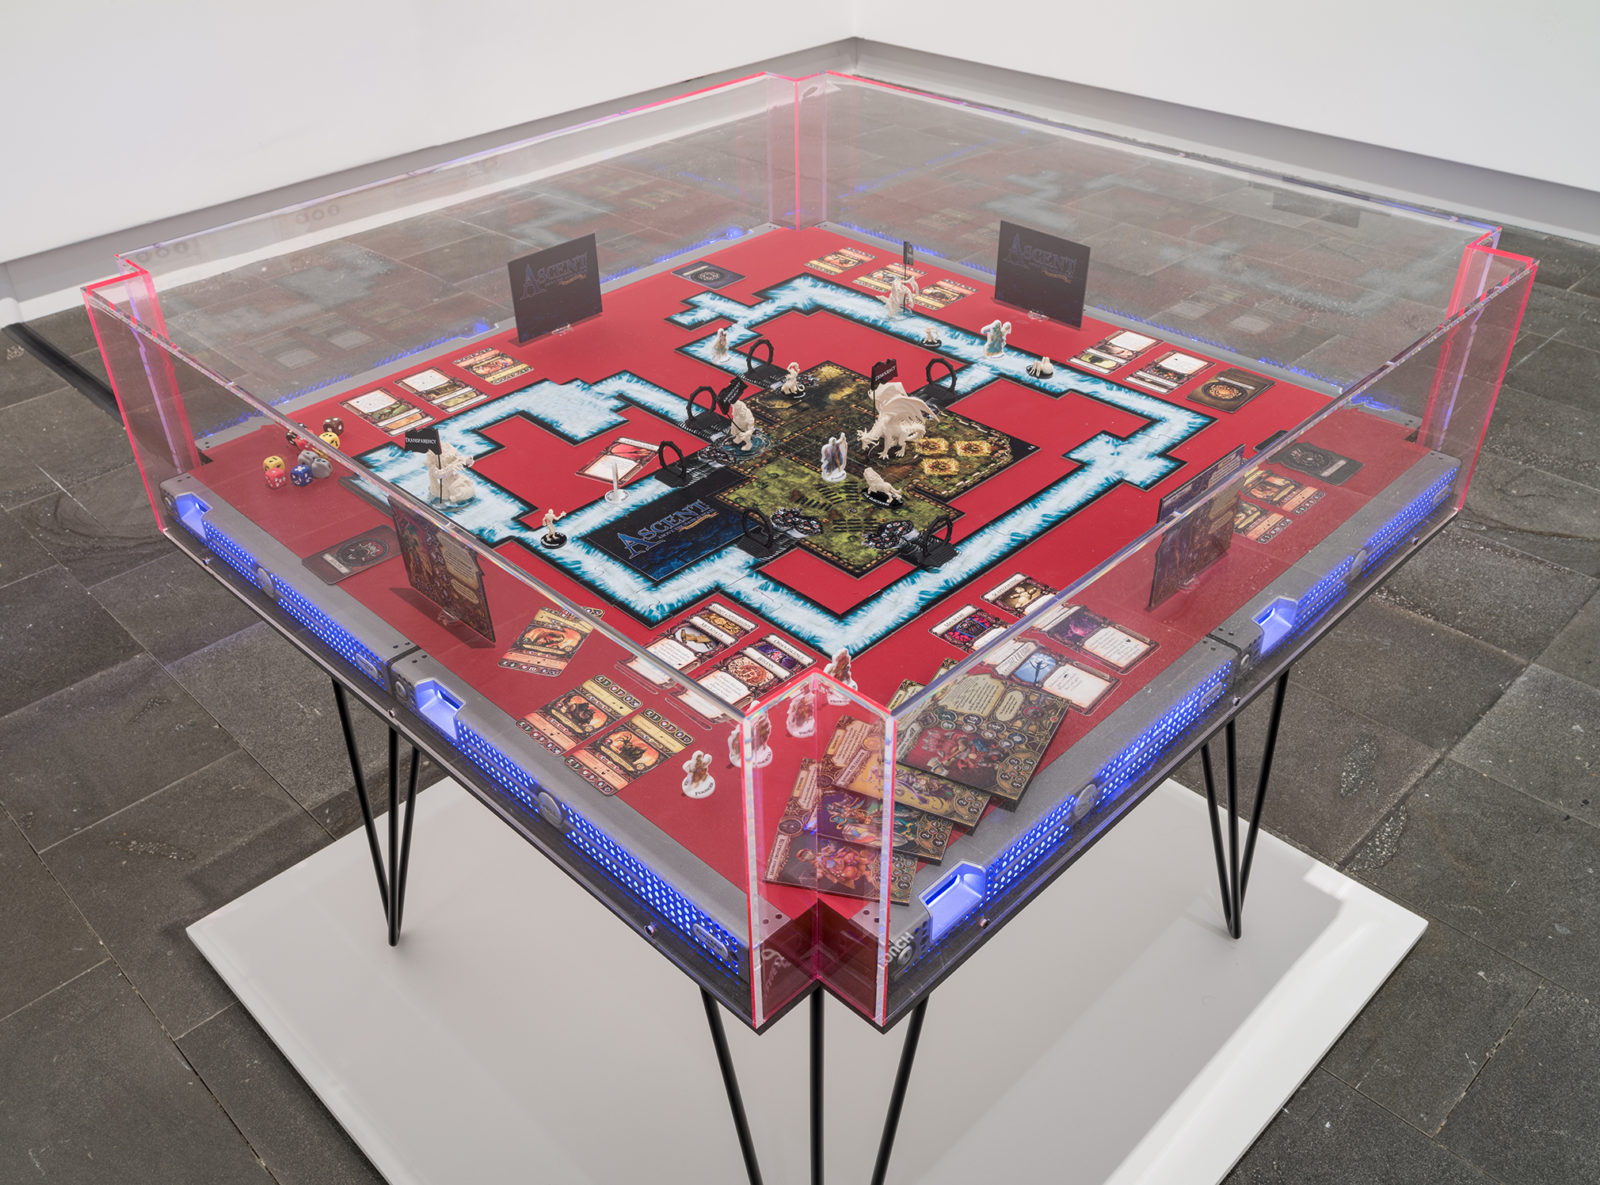 Installation view from The Founders Paradox at Christchurch Art Gallery, Christchurch